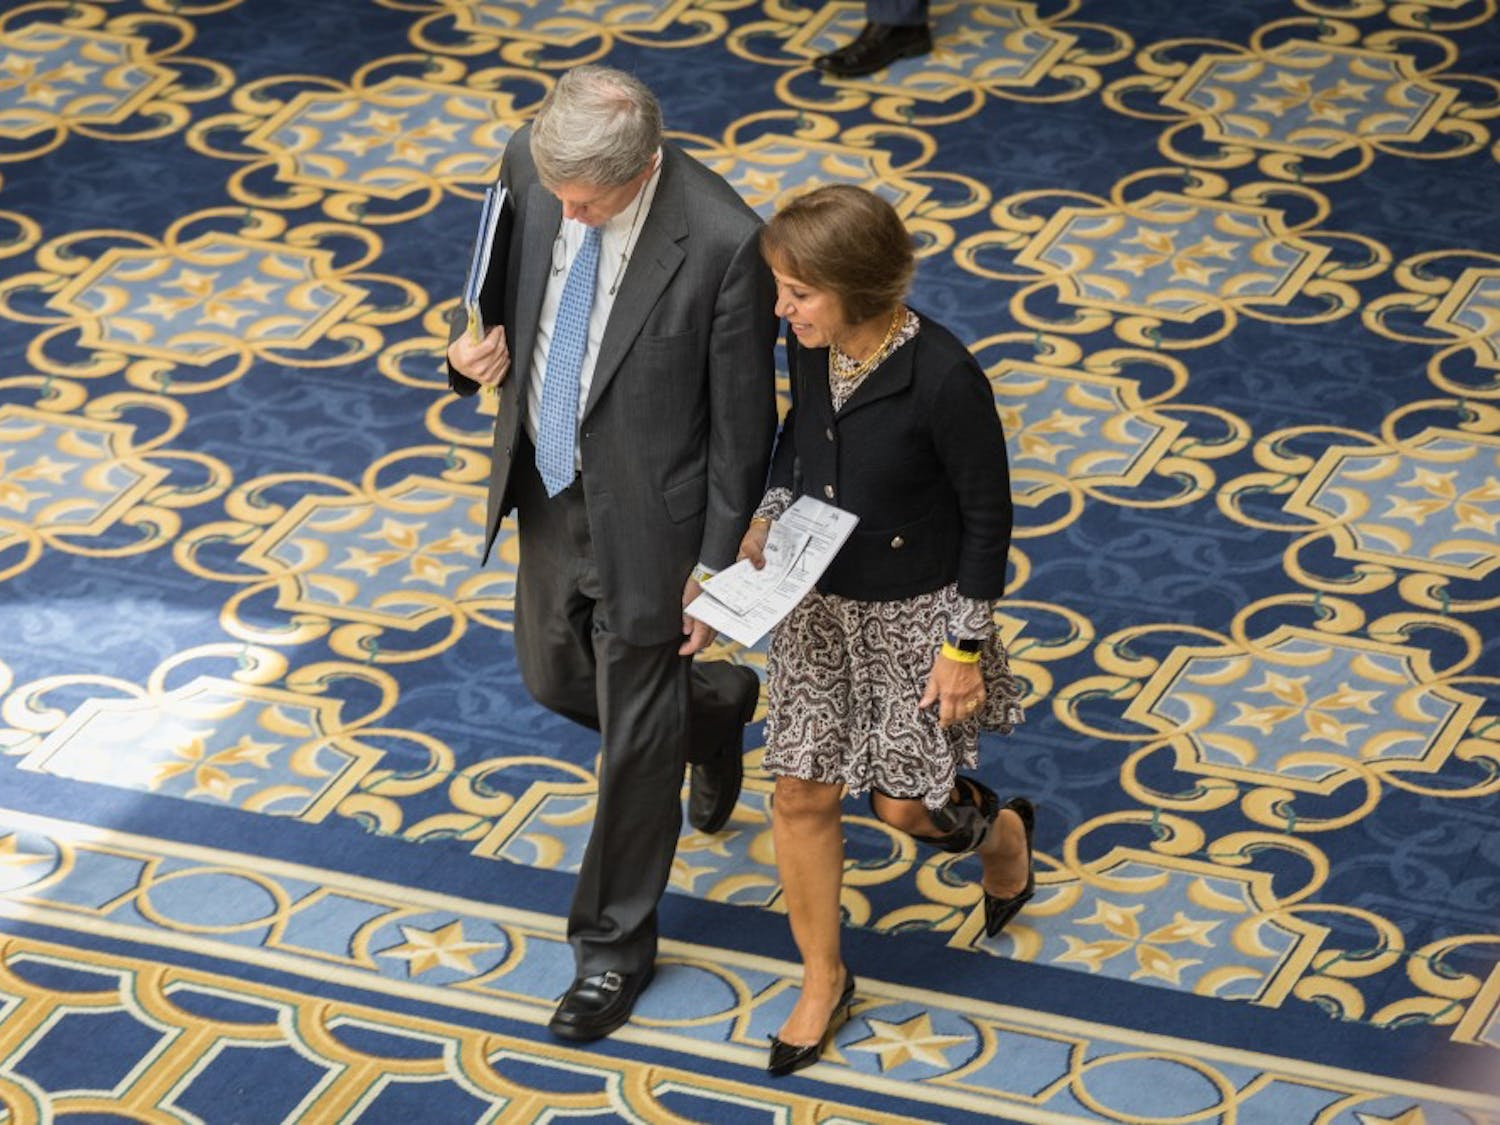 UNC Chancellor Carol Folt walks with Mark Merritt, vice chancellor and general council of UNC, through the Gaylord Opryland Resort & Conference Center in Nashville, Tenn. during a lunch break Aug. 16, 2017.